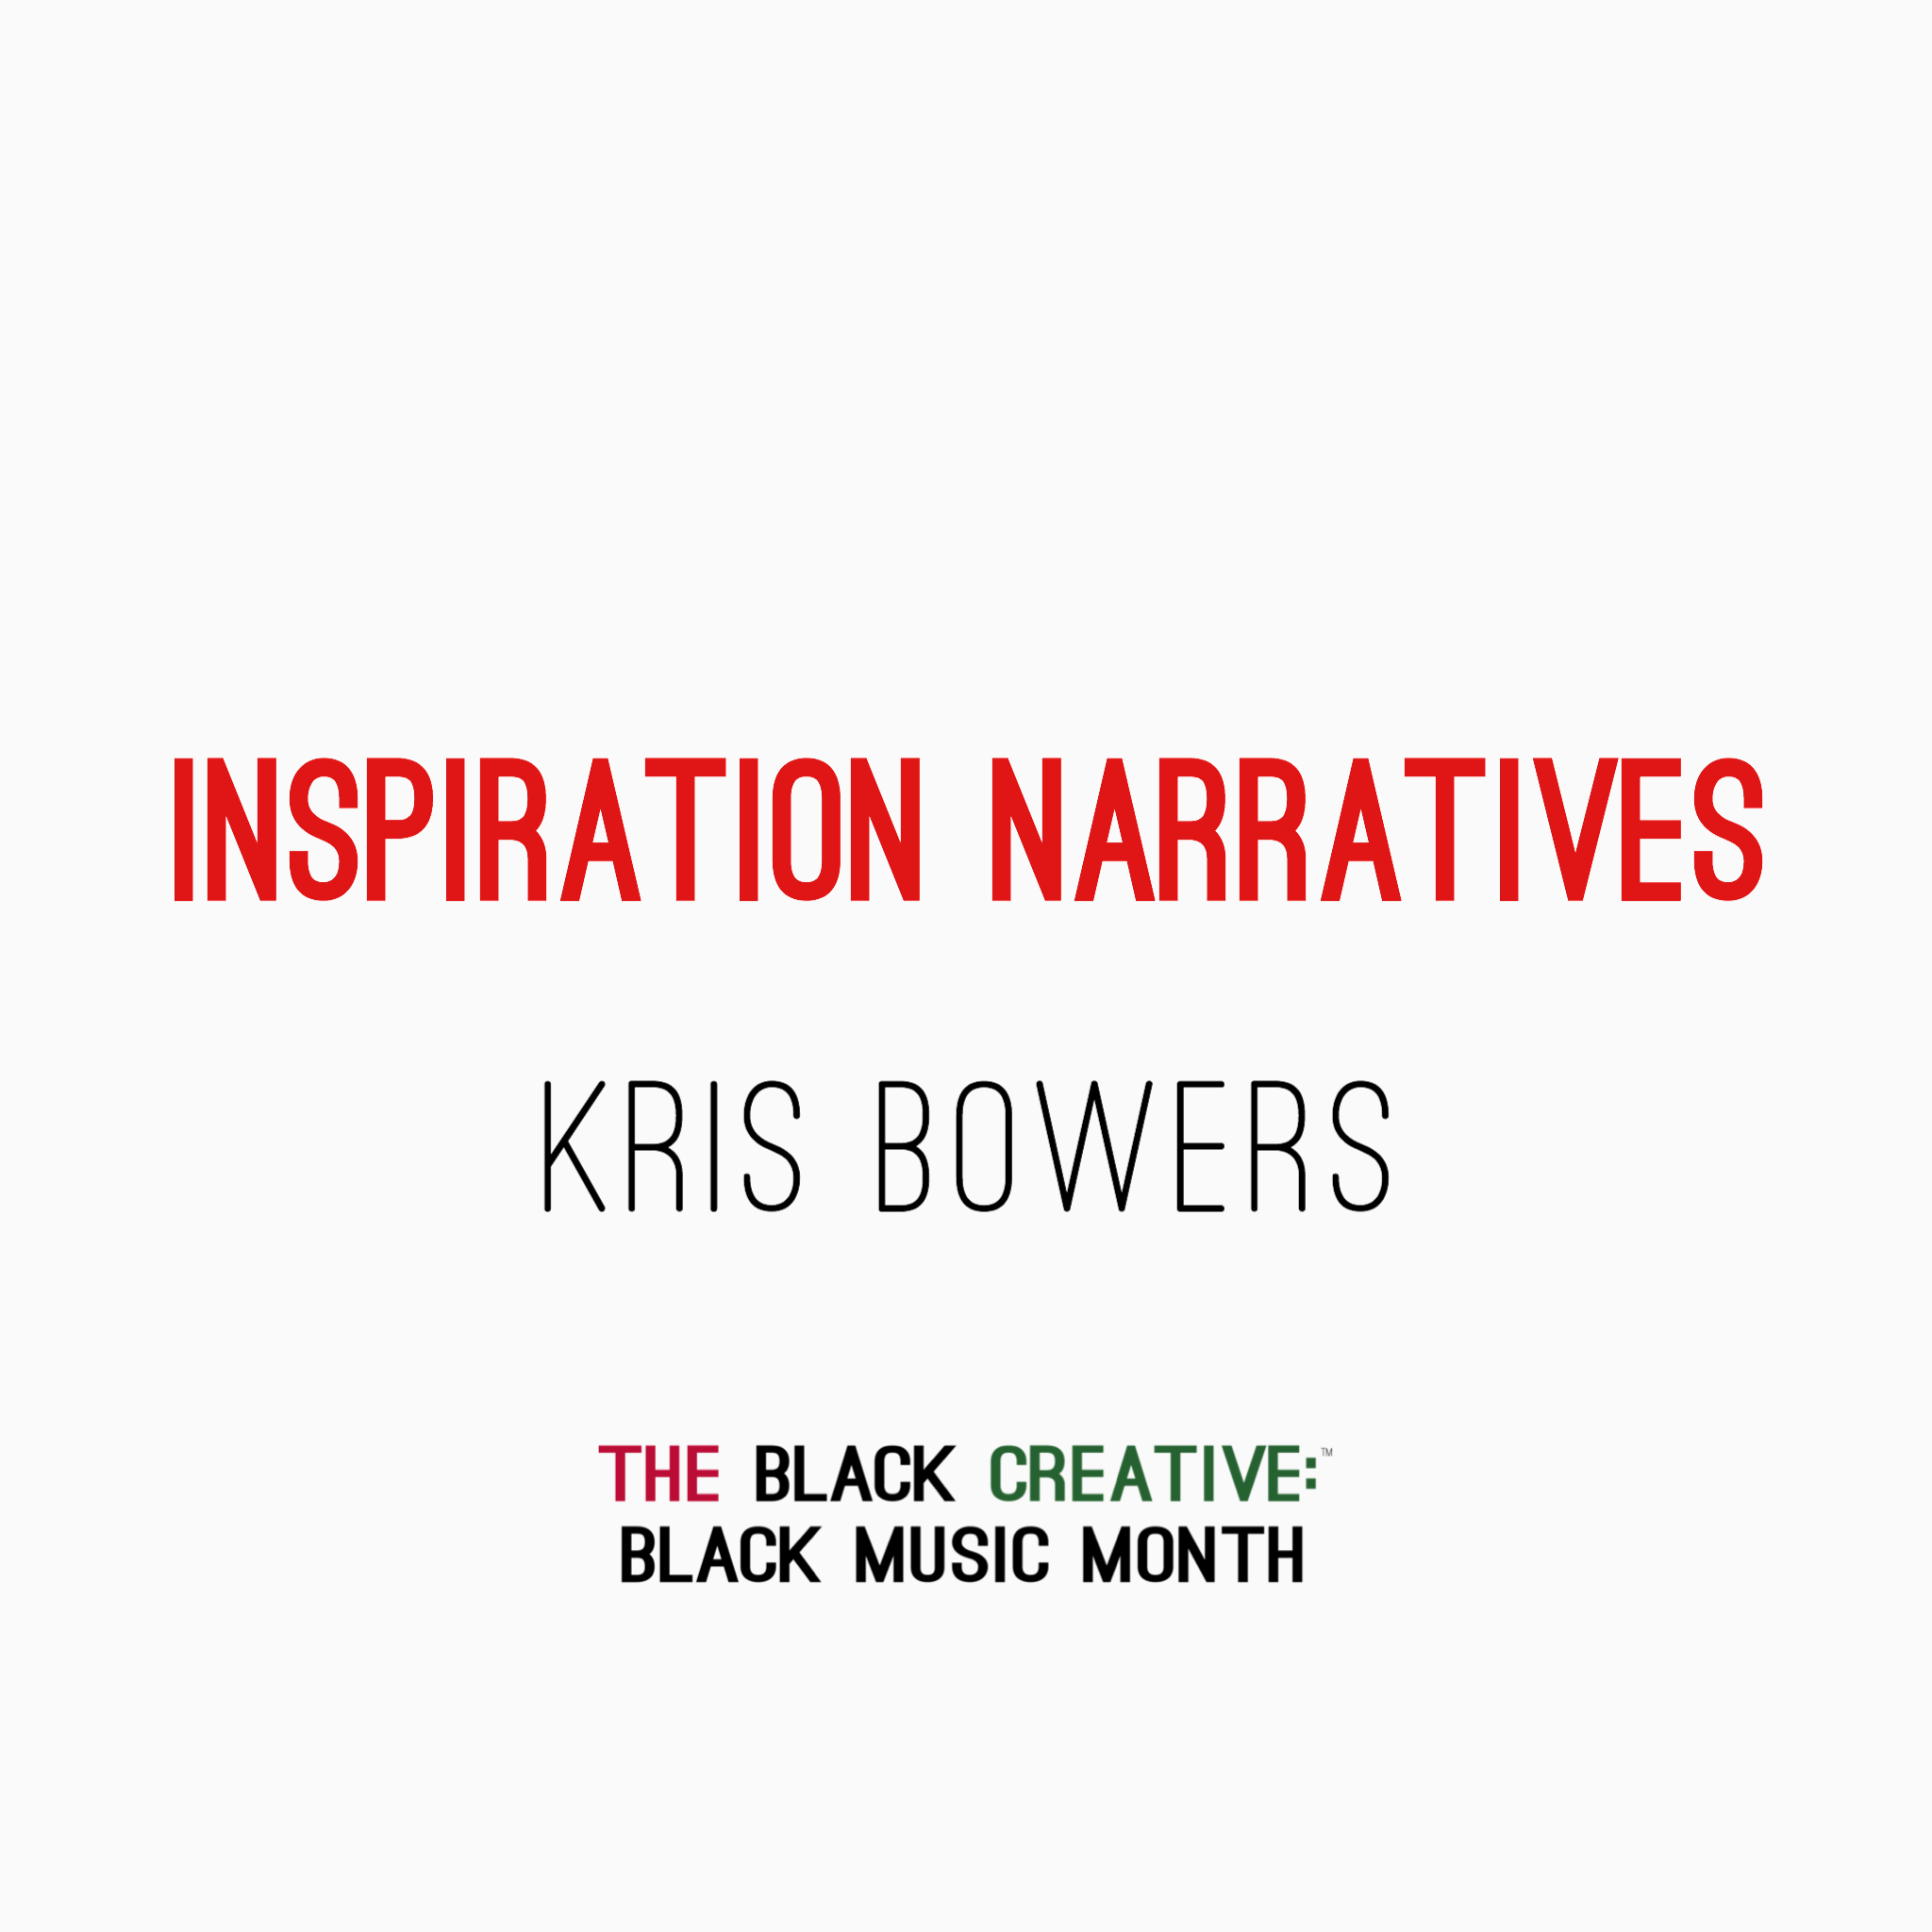 Inspiration Narratives - Kris Bowers